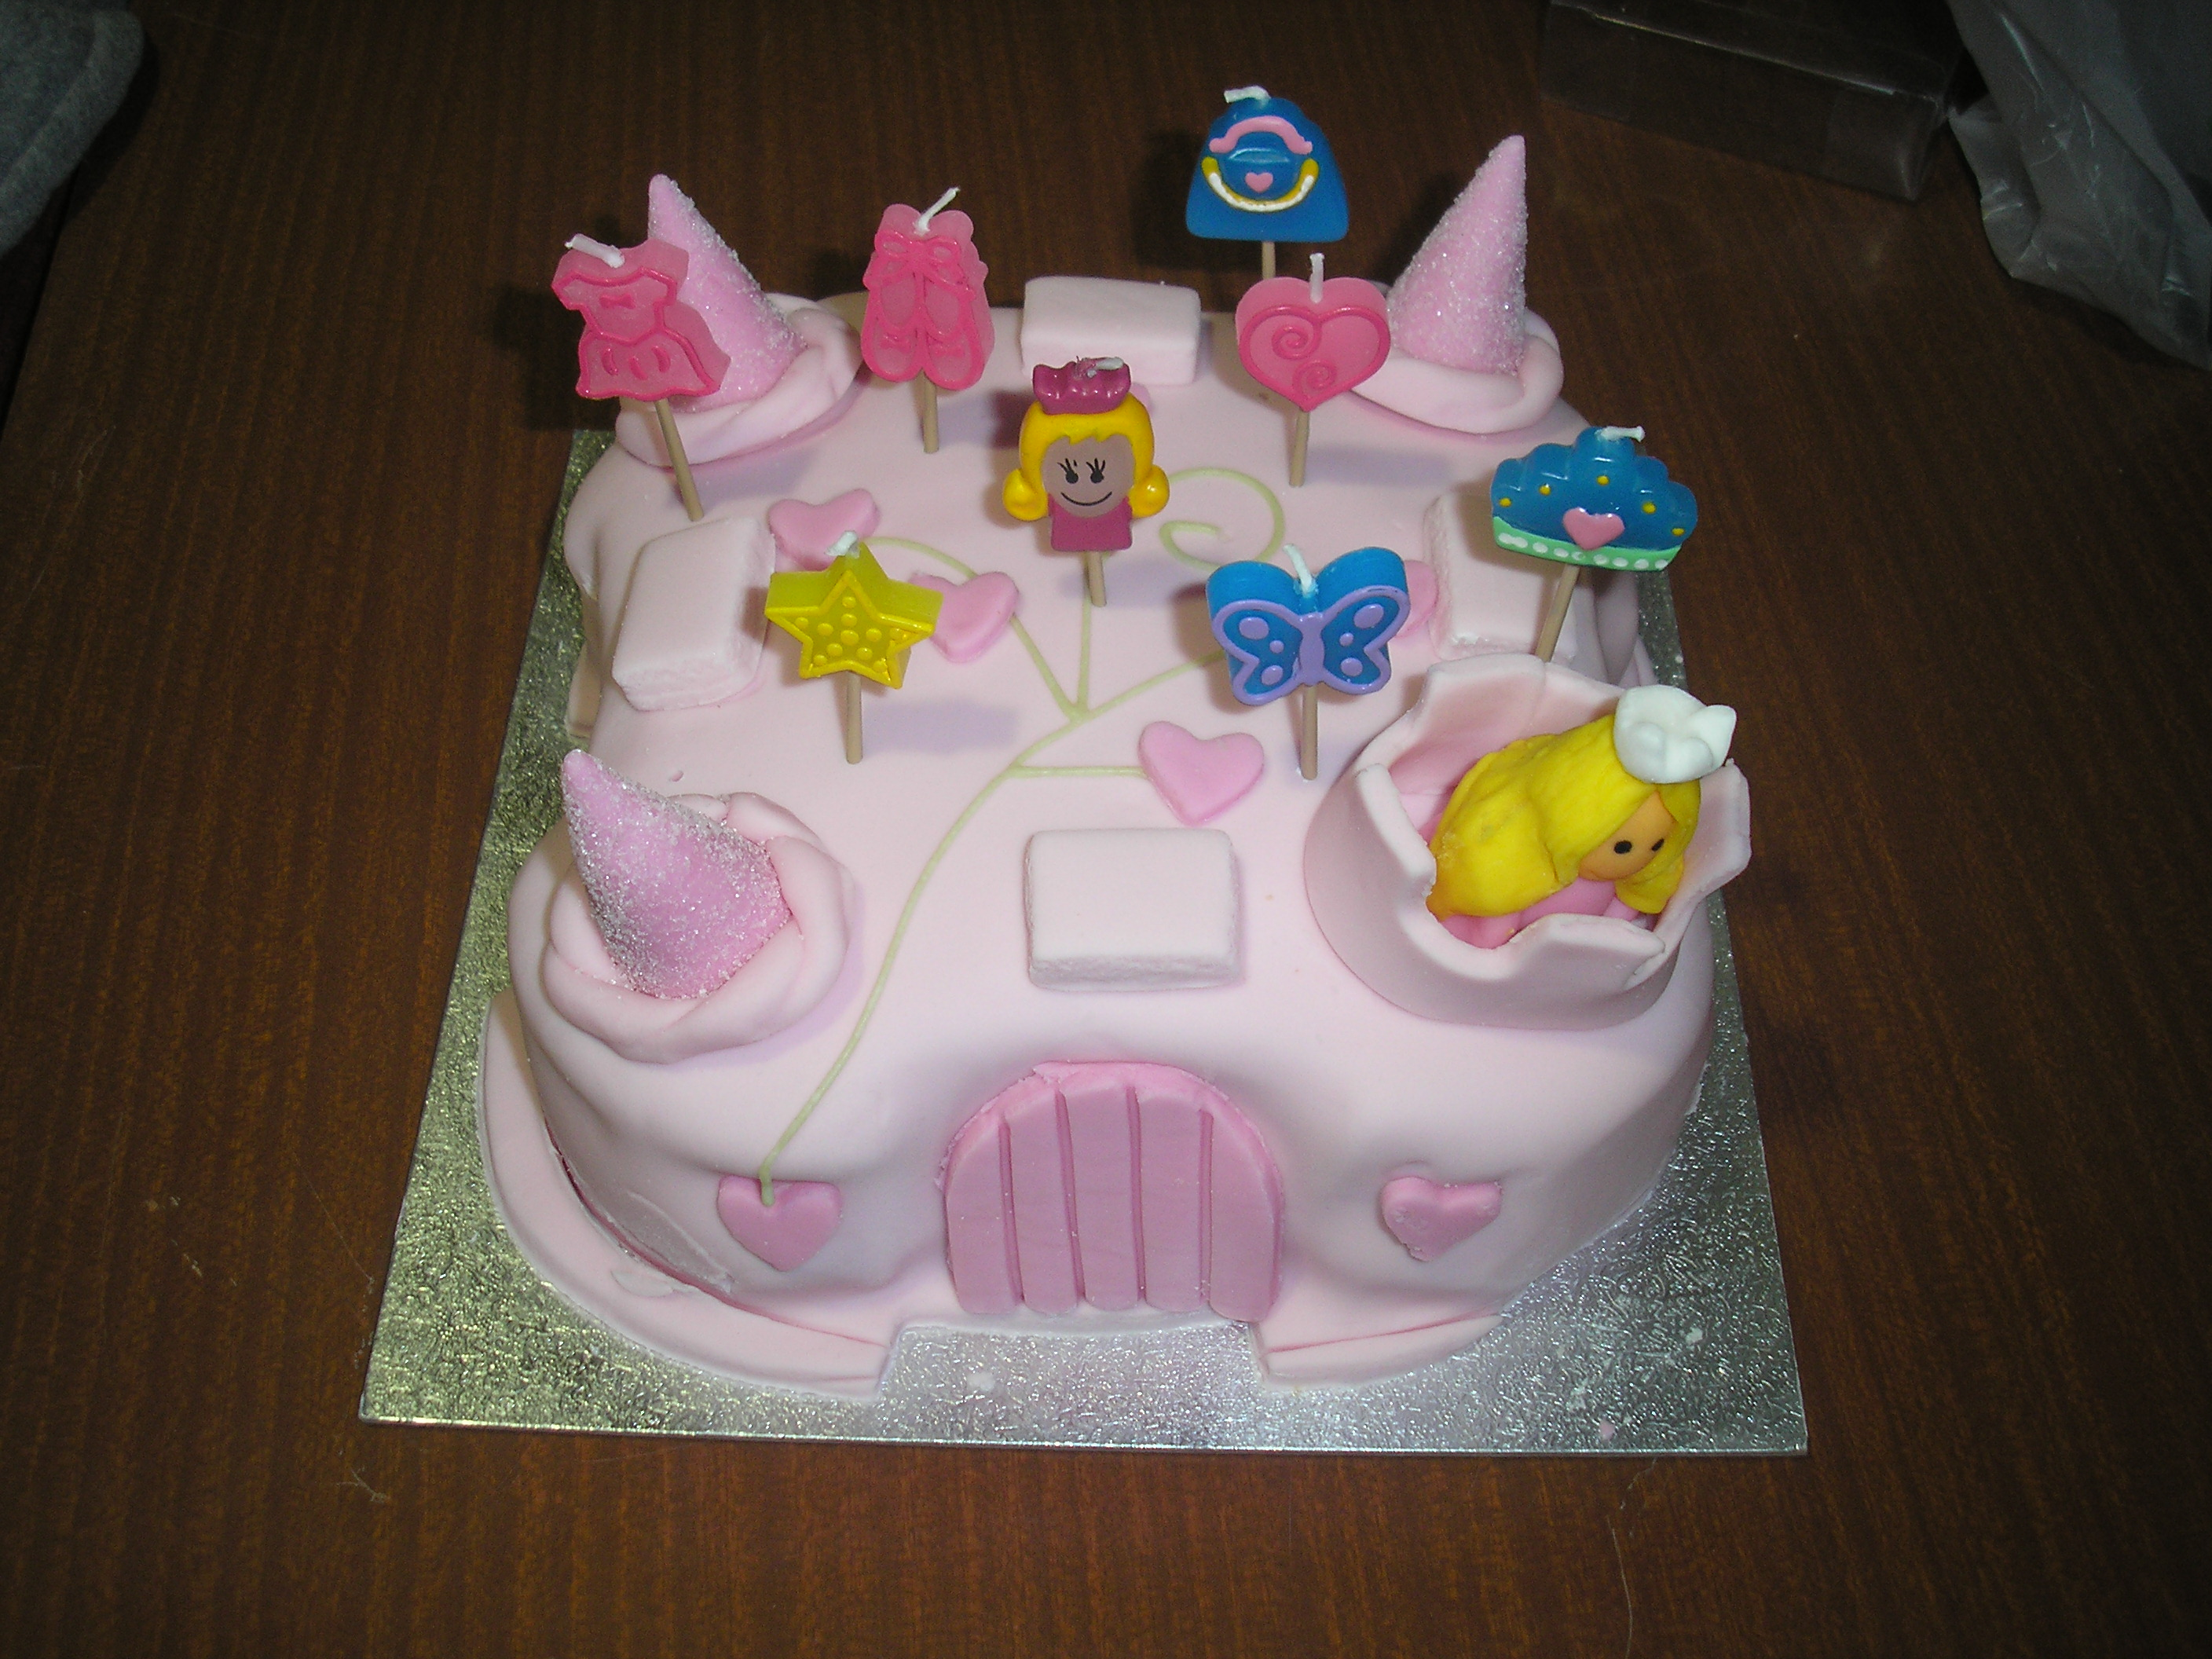 Laurens 5th Birthday Cake